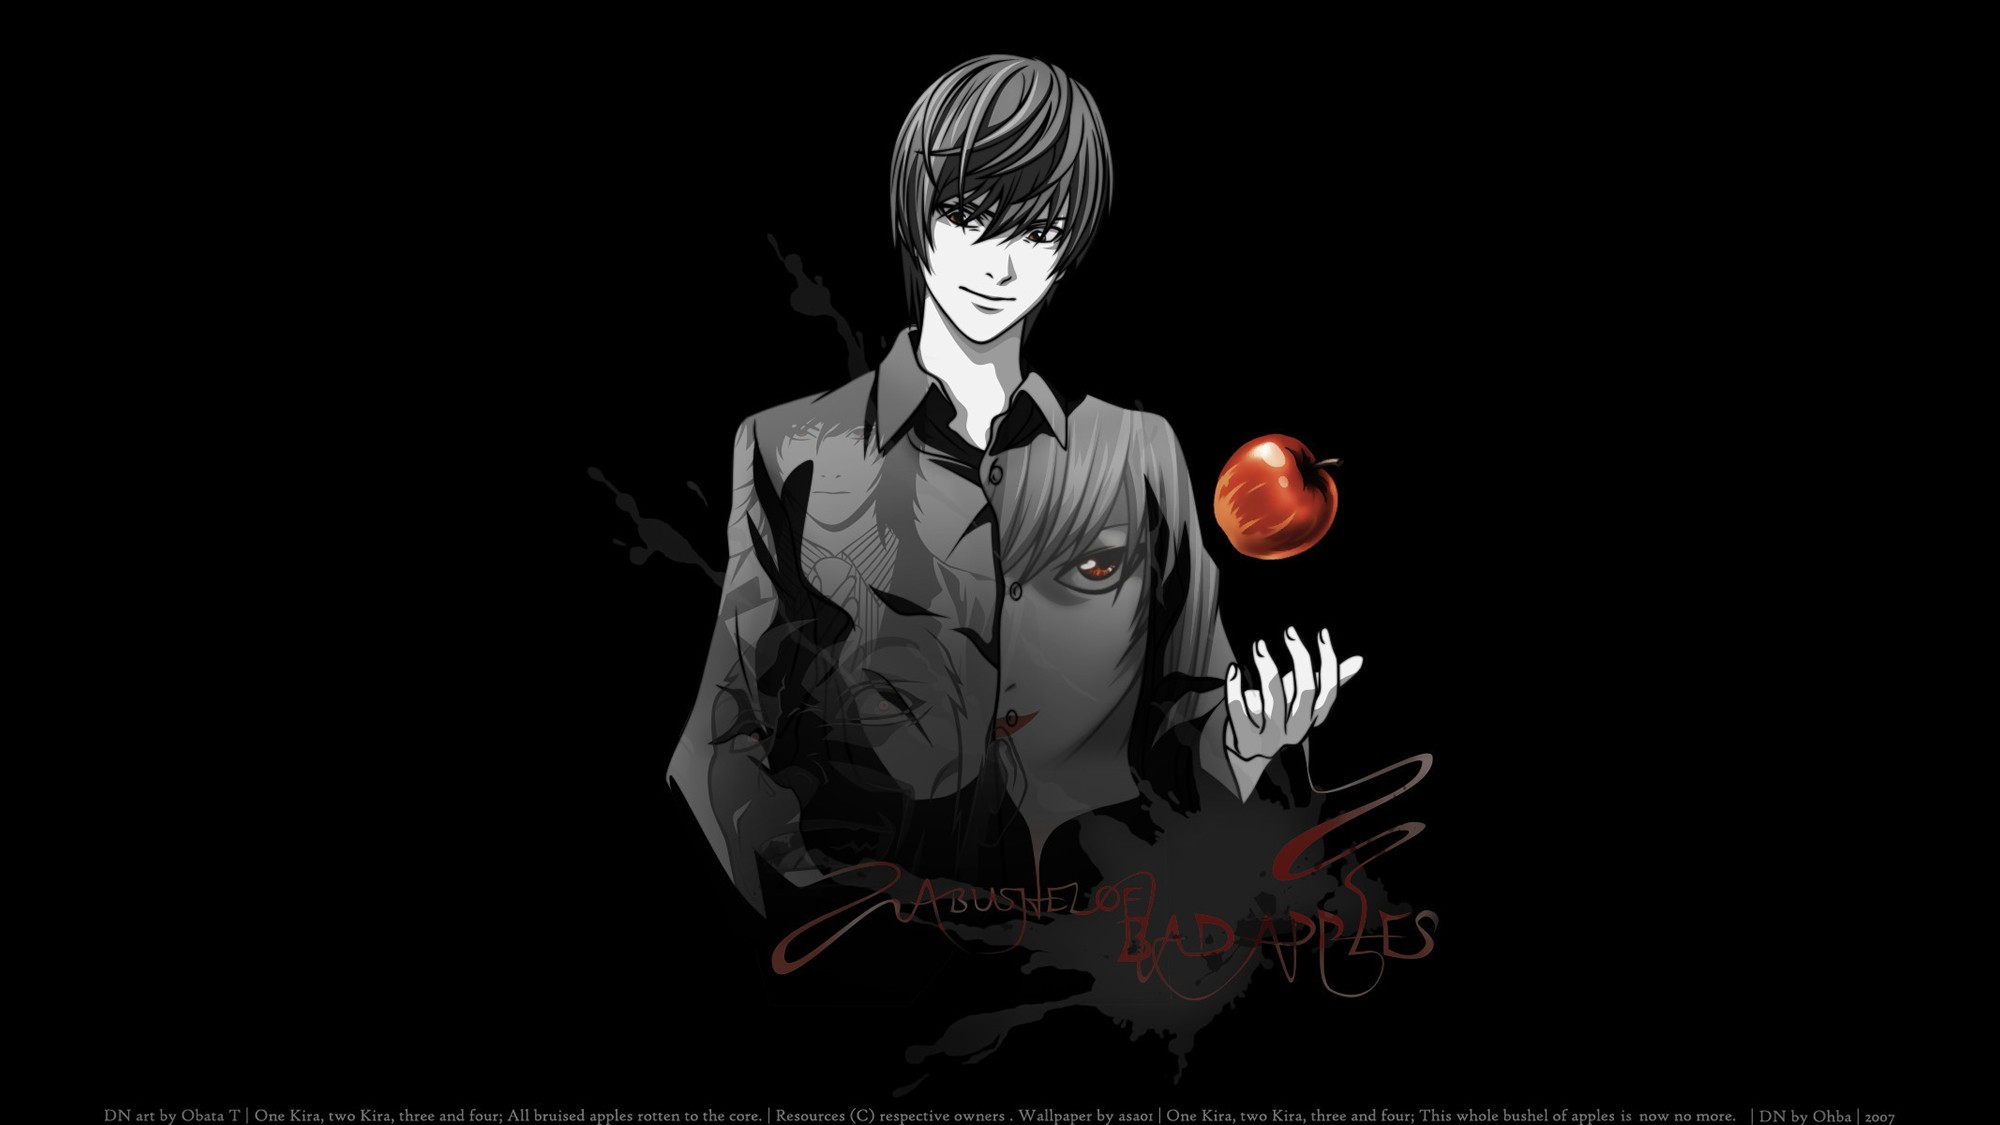 Fondos de pantalla Anime Light Yagami de Death Note